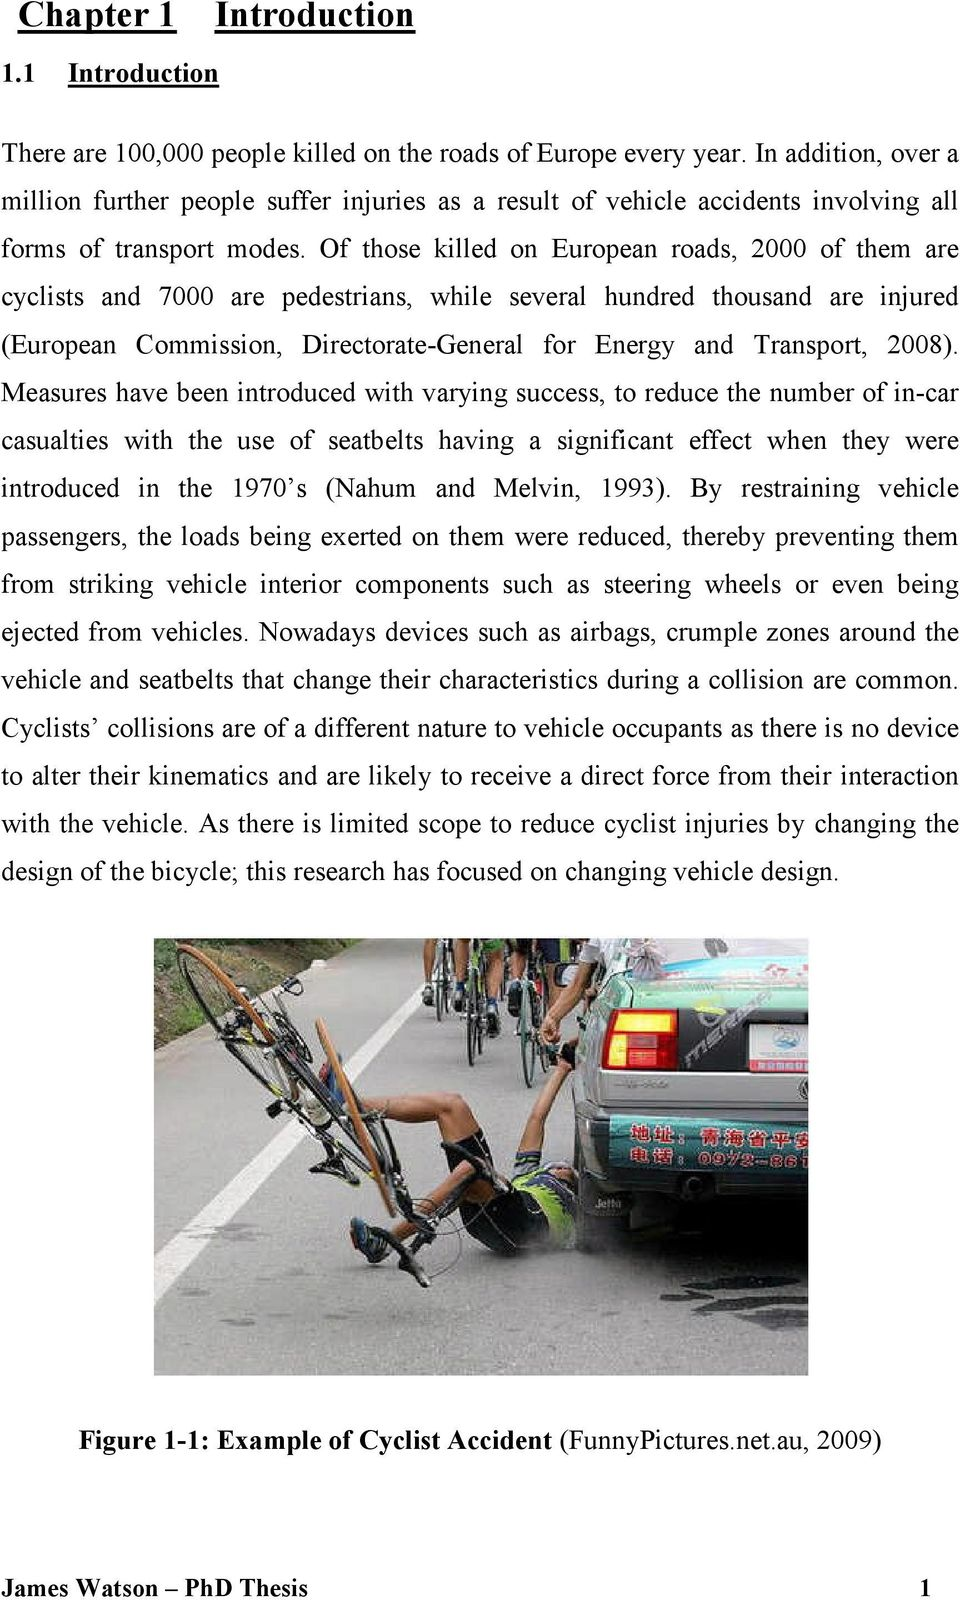 Of those killed on European roads, 2000 of them are cyclists and 7000 are pedestrians, while several hundred thousand are injured (European Commission, Directorate-General for Energy and Transport,